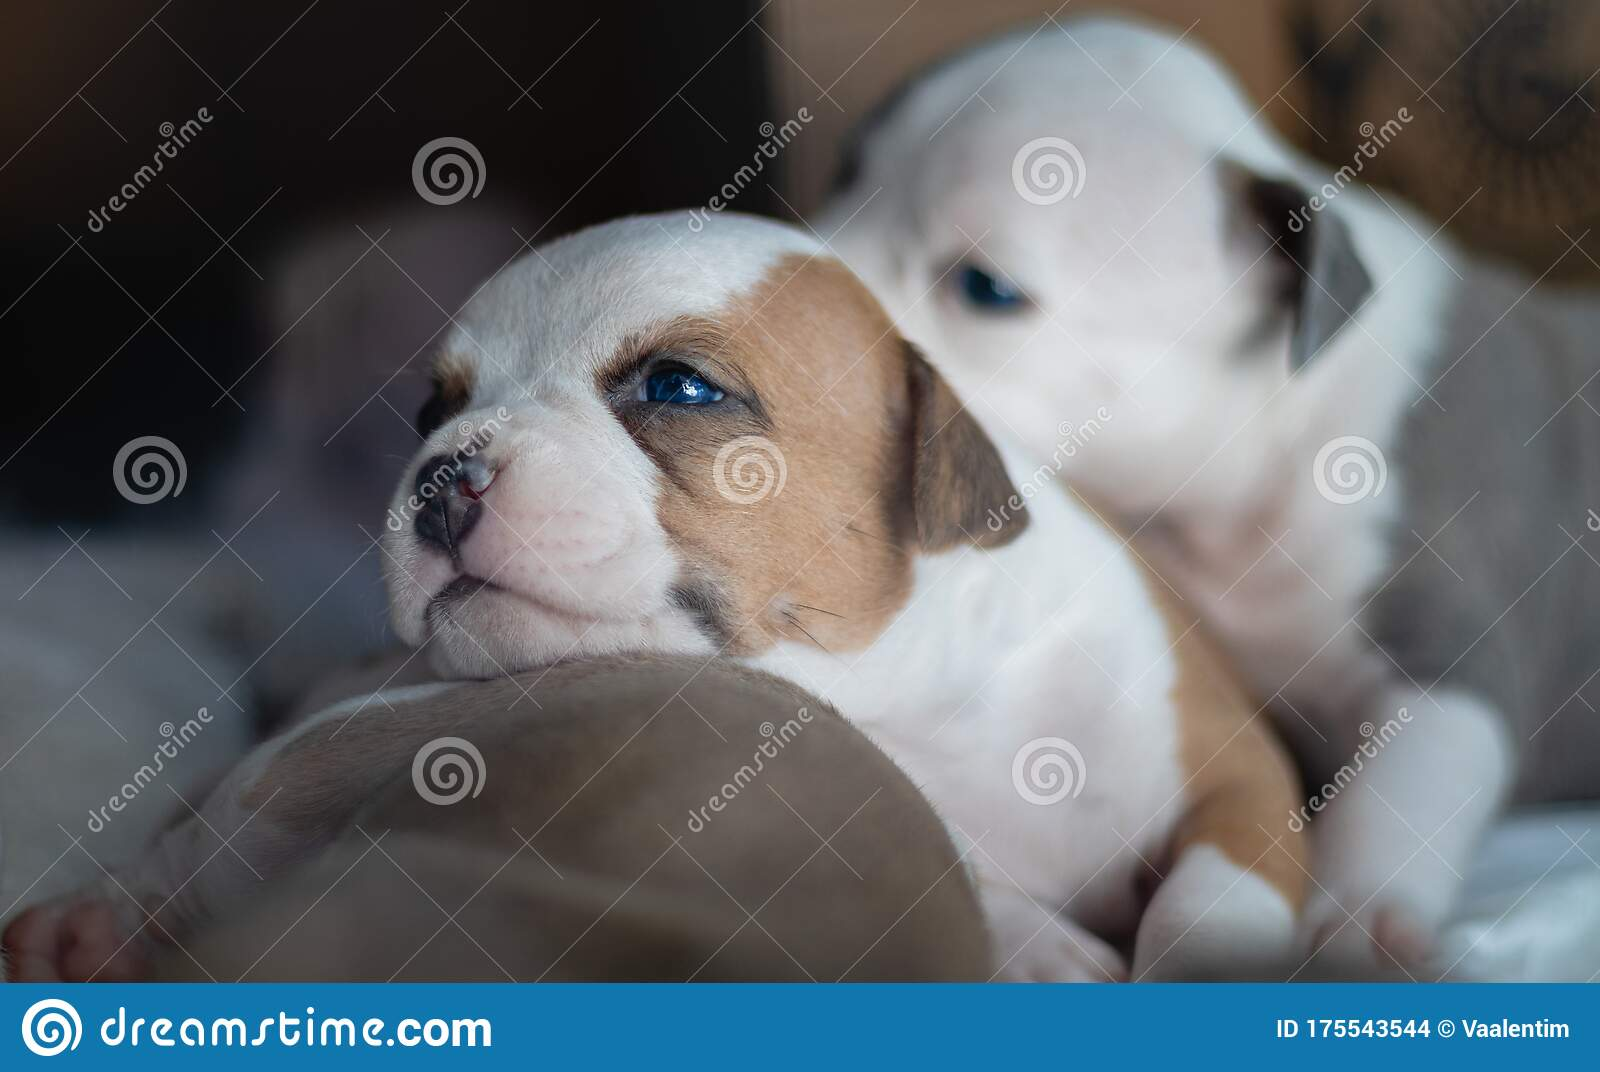 Cute Puppies With Blue Eyes Stock Photo Image Of Love Adorable 175543544